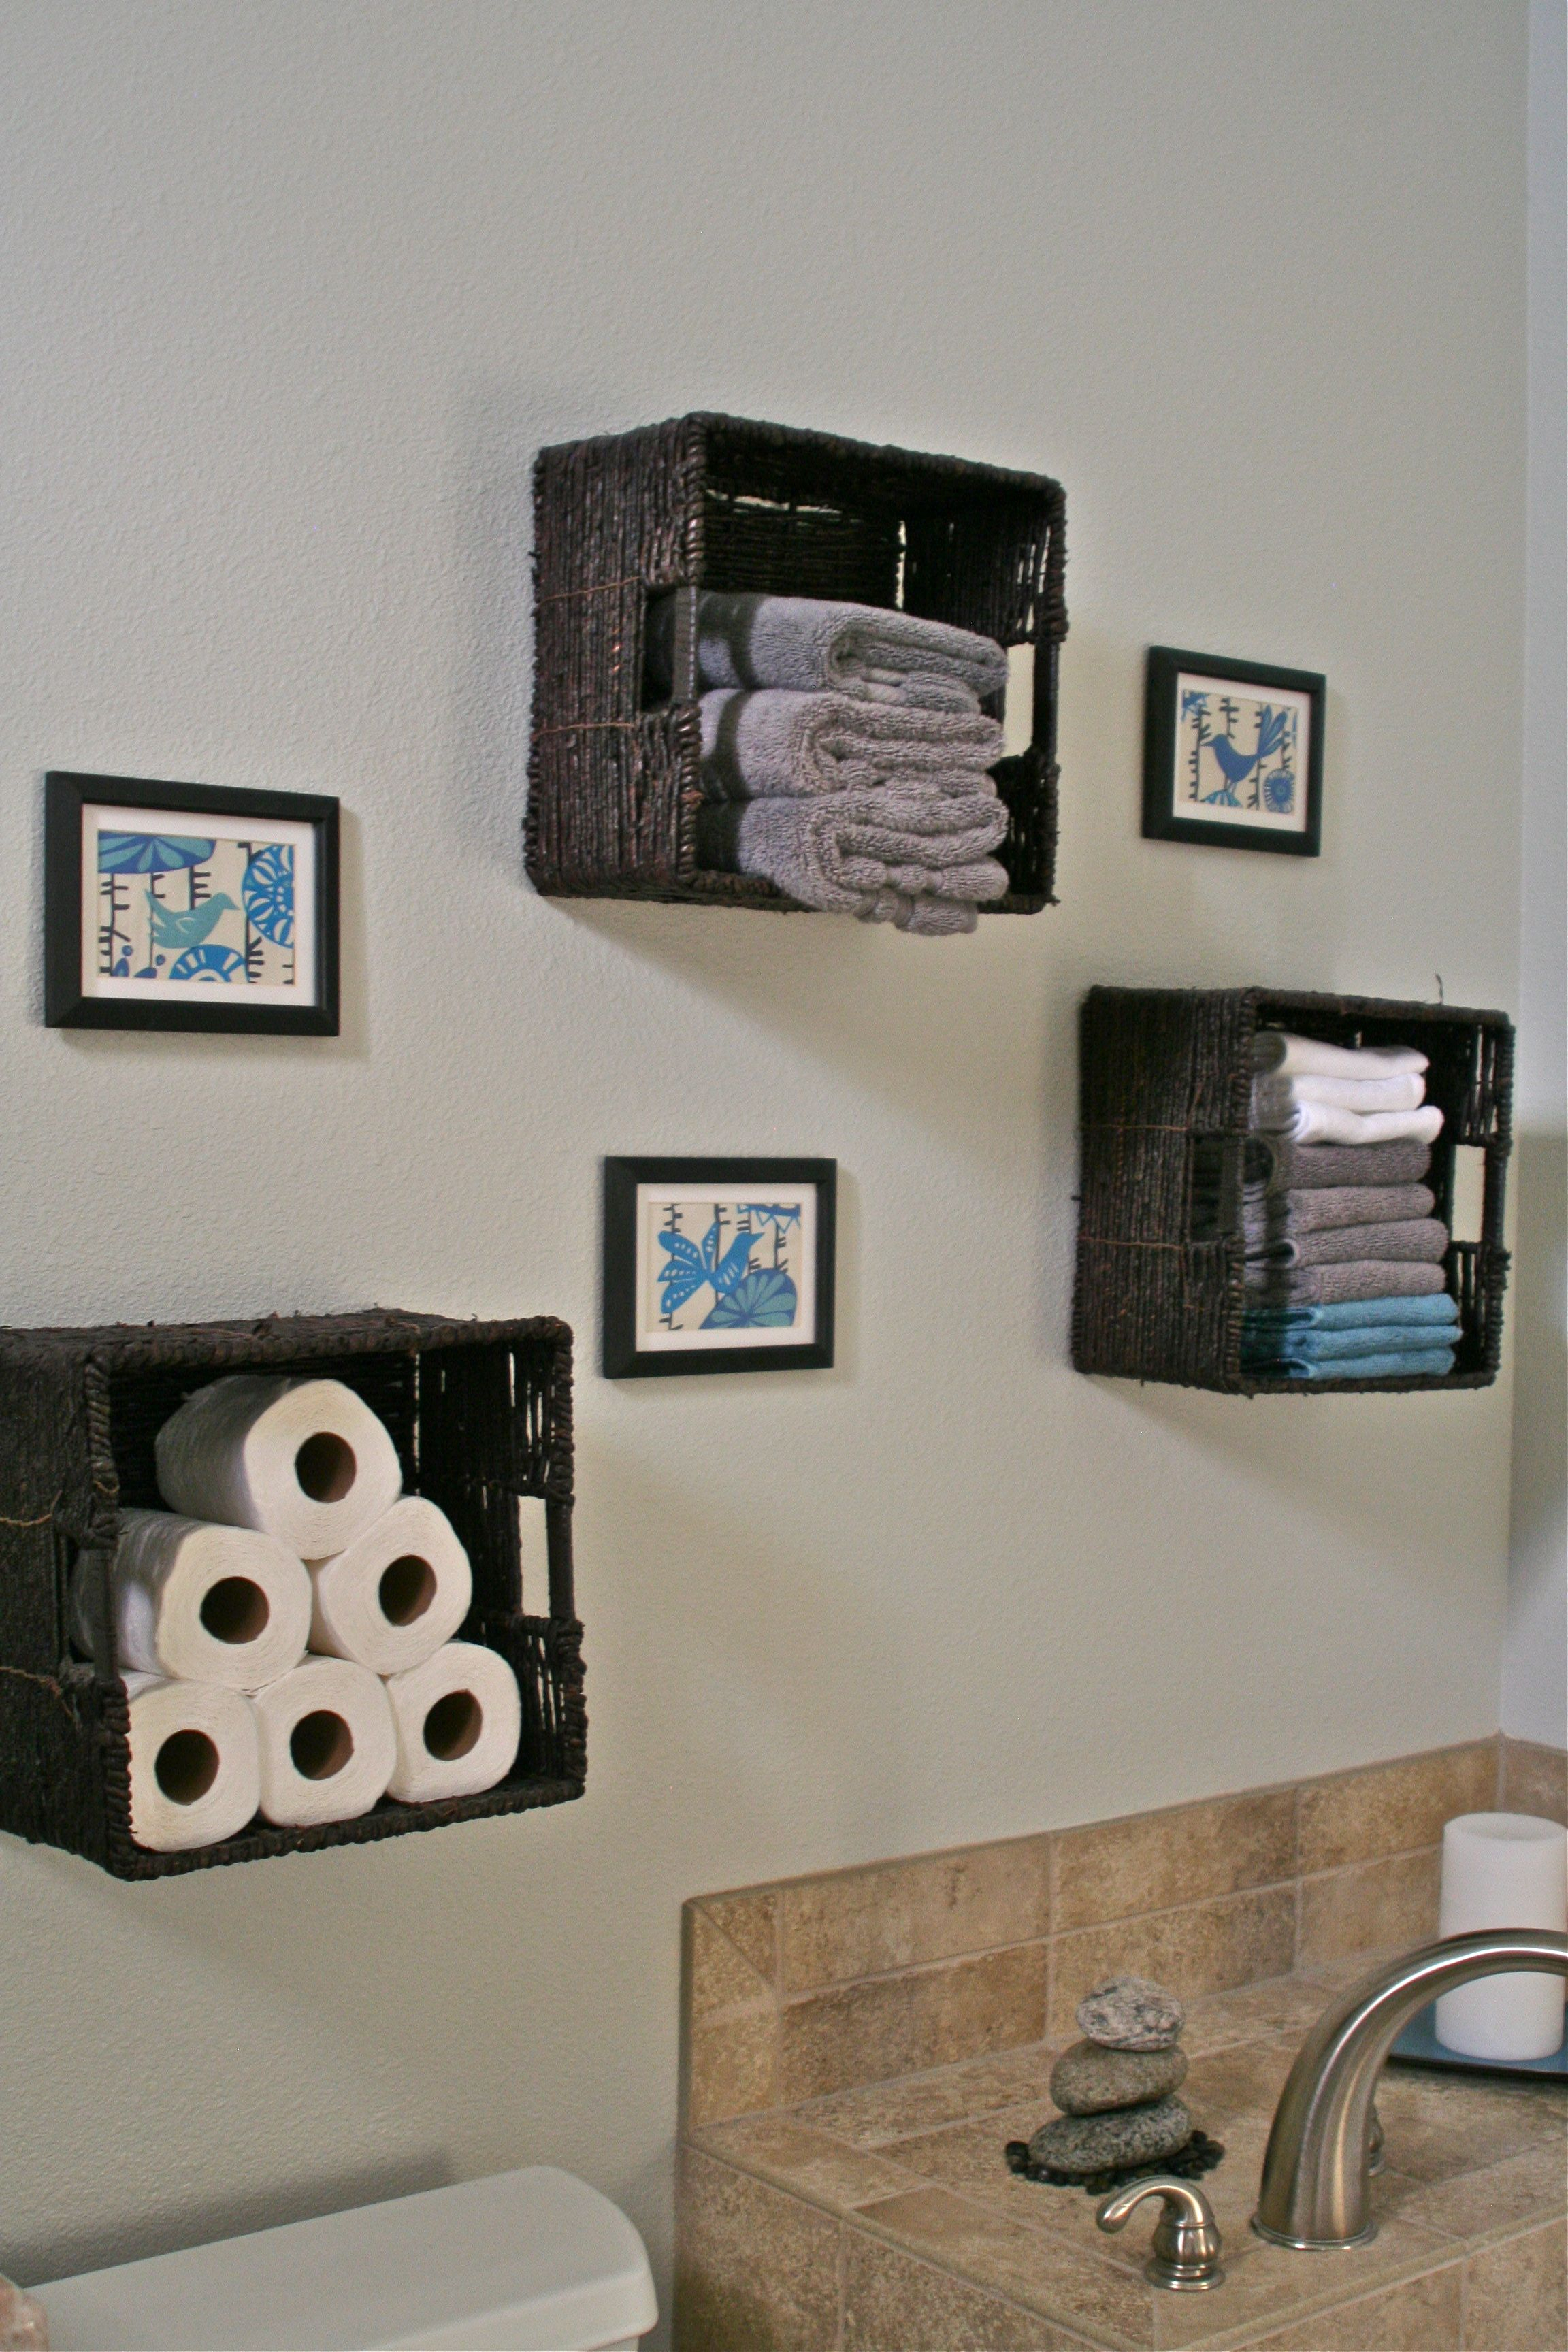 Bathroom Storage Baskets For Towels Toilet Paper Etc Love with proportions 2304 X 3456